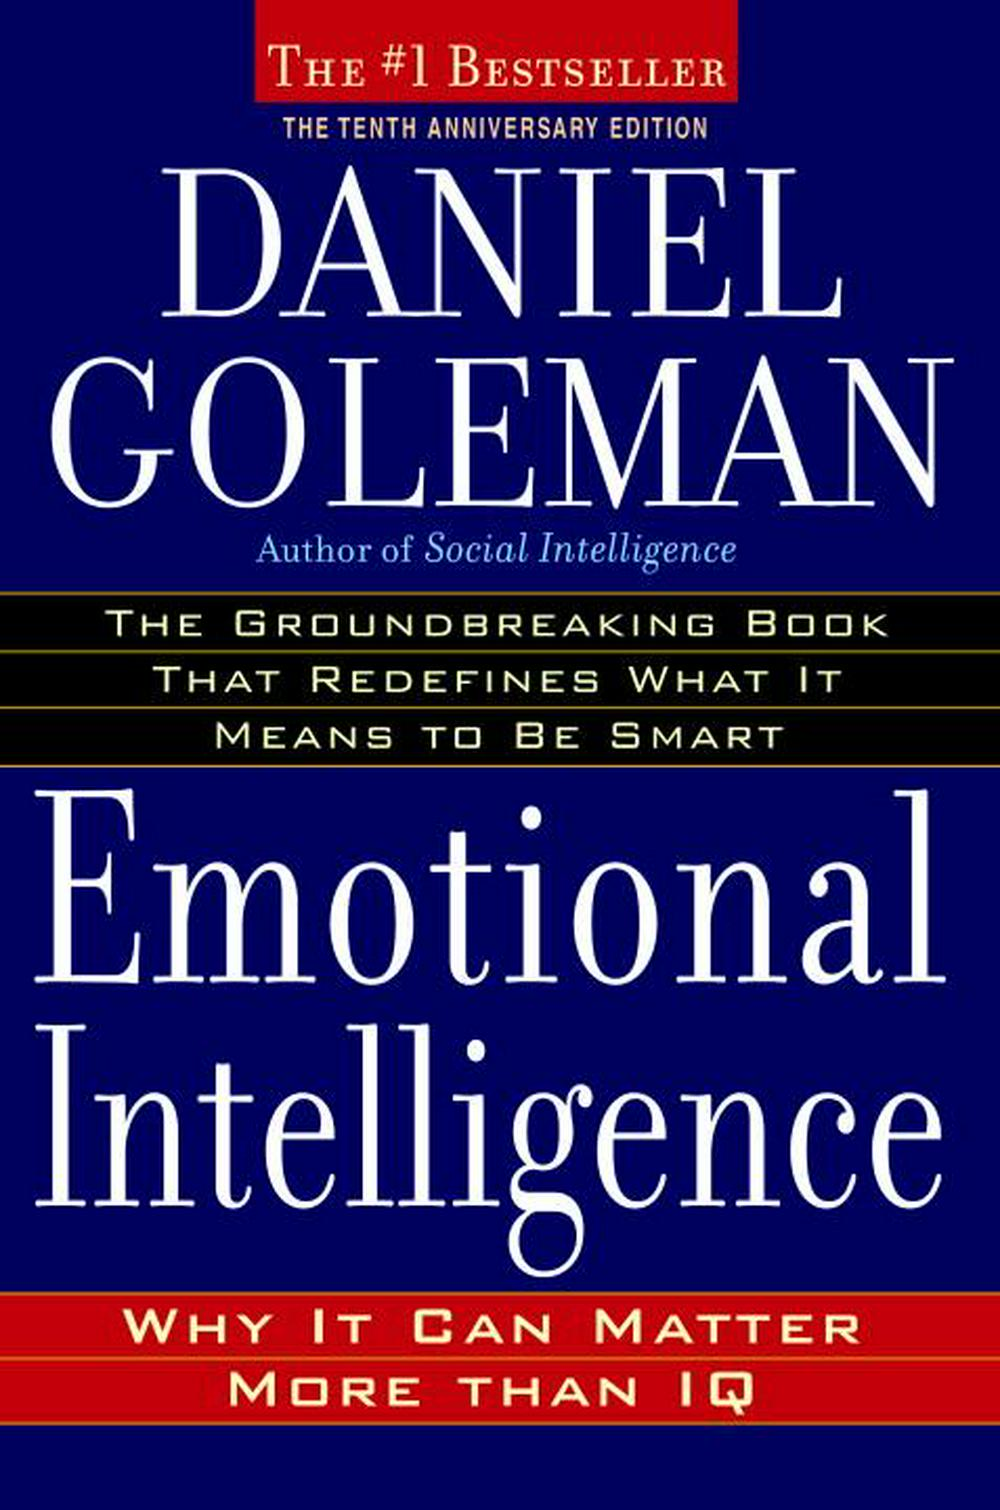 Emotional Intelligence by Daniel P Goleman, ISBN: 9780553804911